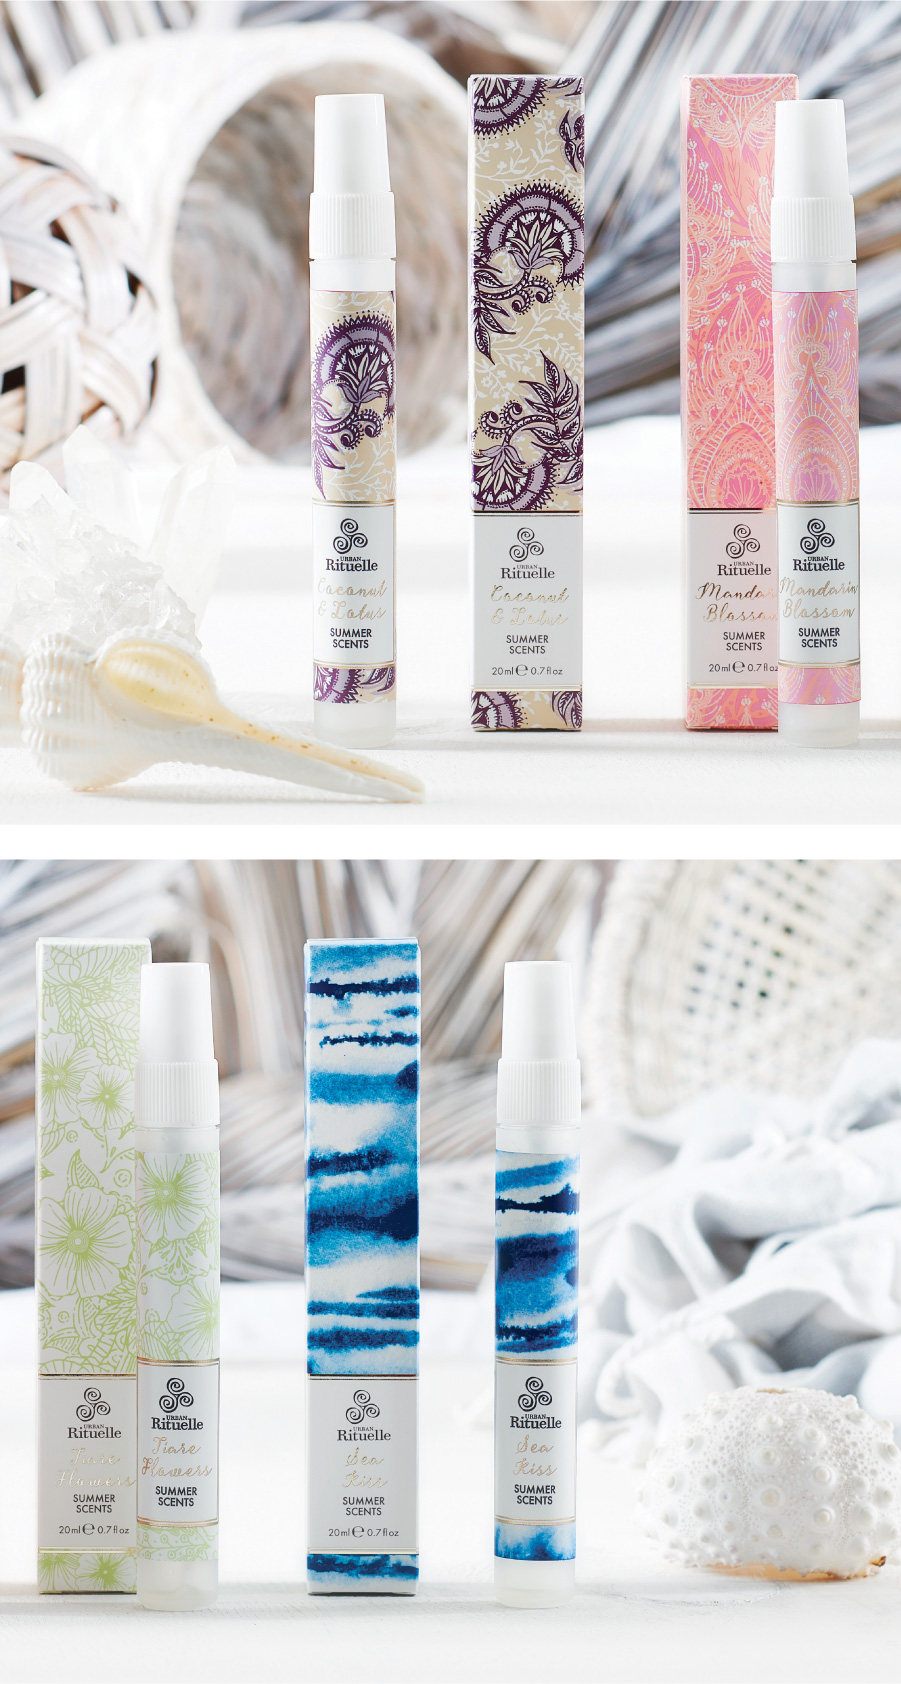 Seaside Story Summer Scents